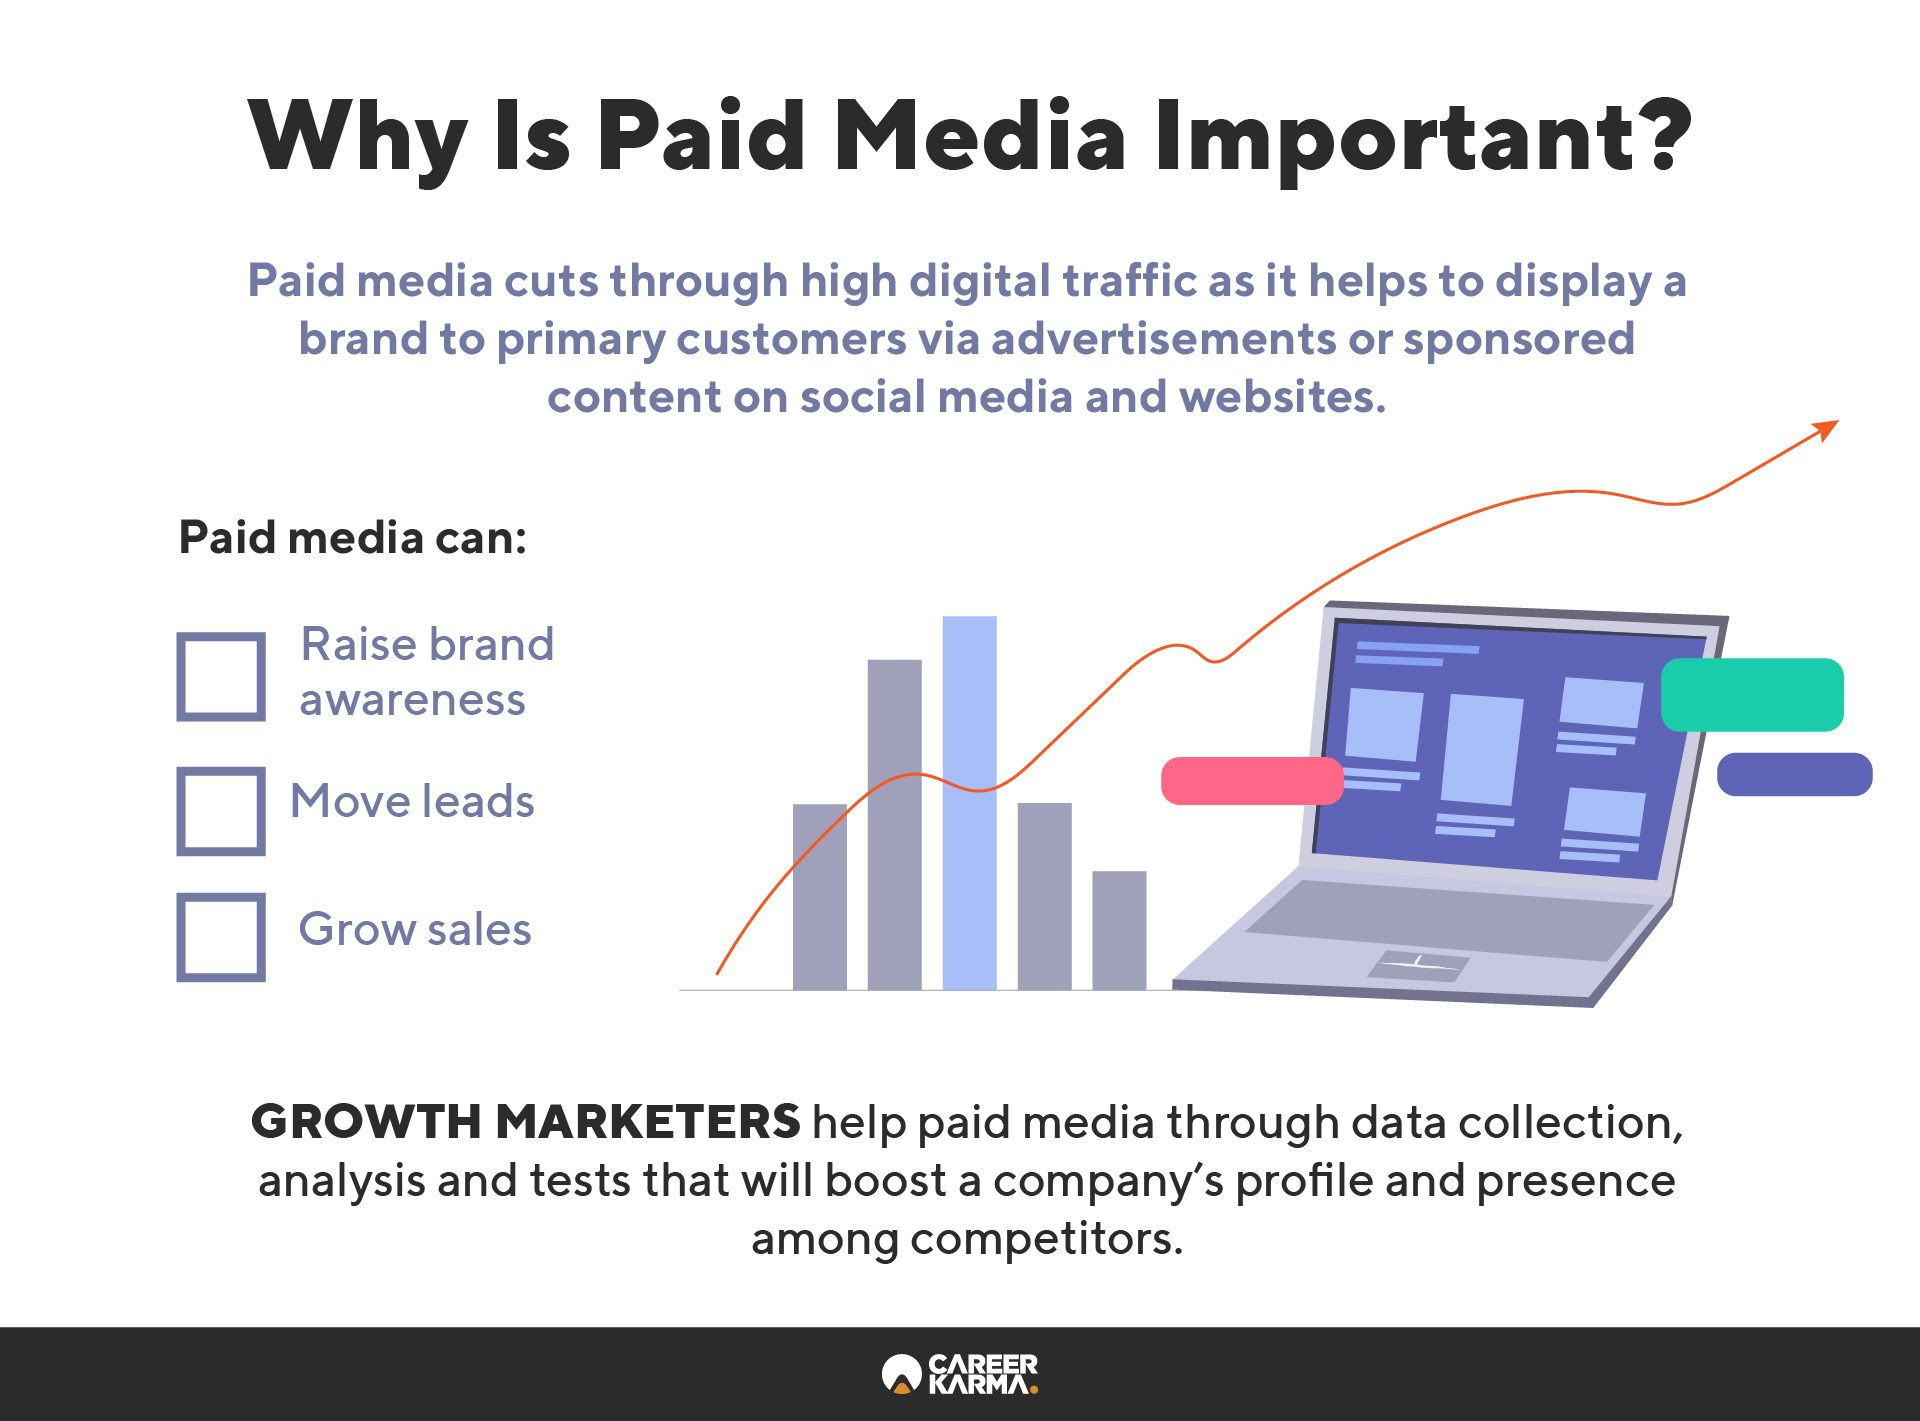 An infographic covering the benefits of paid media to a business